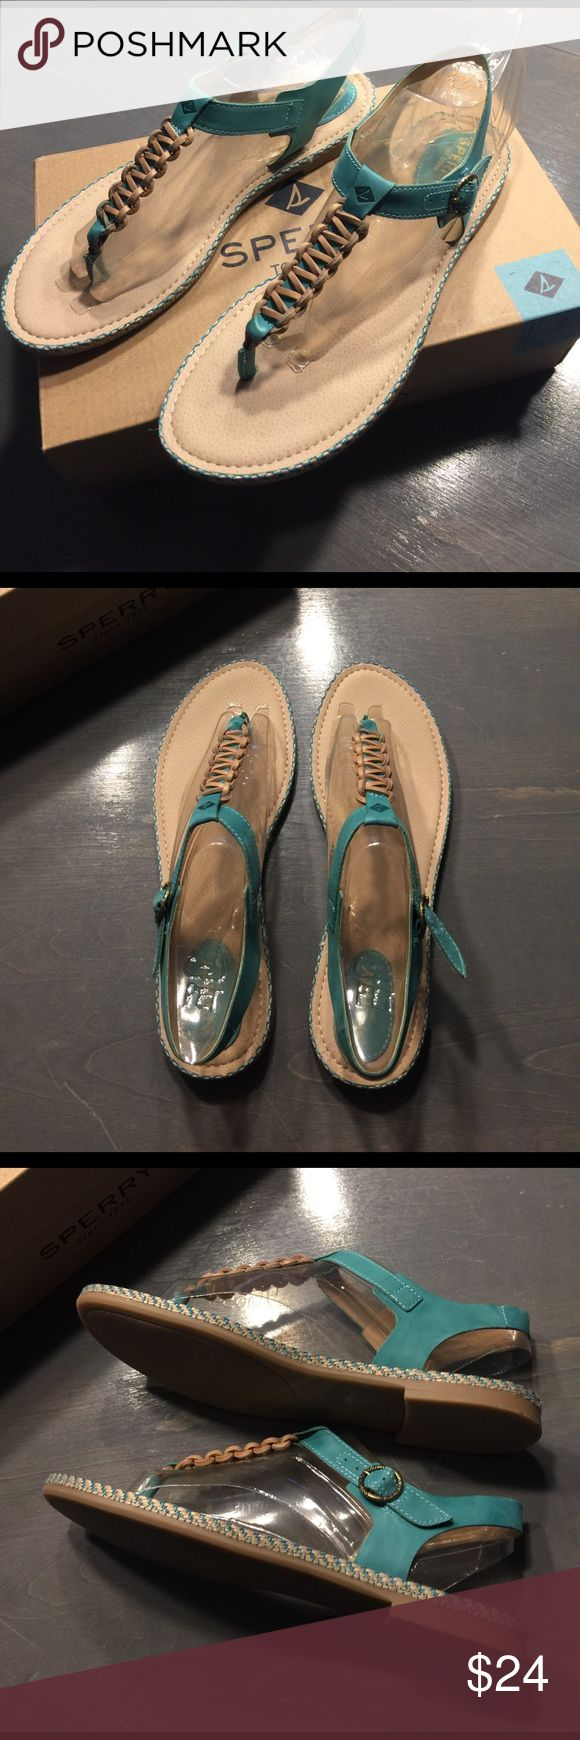 Sperry Anchor Away Teal Sandals Brand New w/tags Sandals in Teal size 8.5 Sperry Shoes Sandals